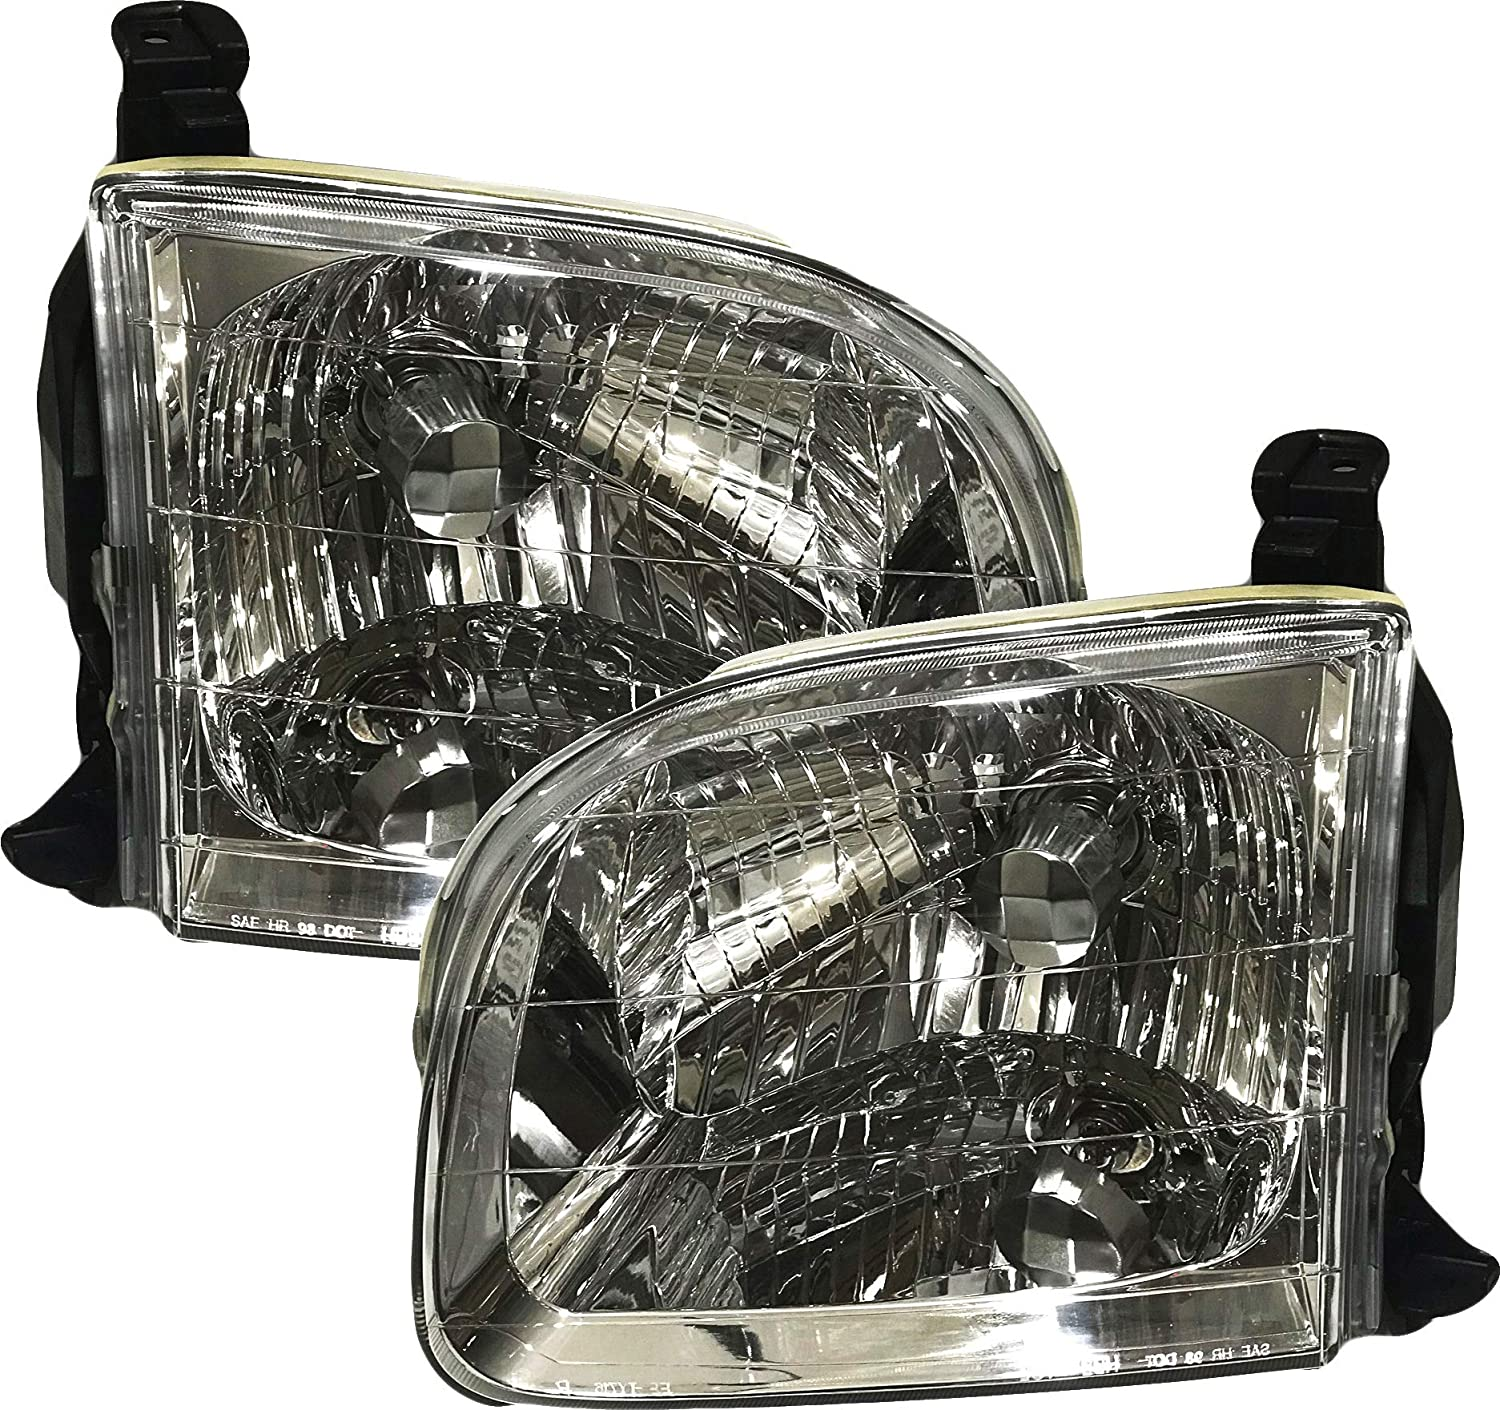 Headlamp Headlight for 2000-2004 TOYOTA SEQUOIA TUNDRA Left Driver Side LH